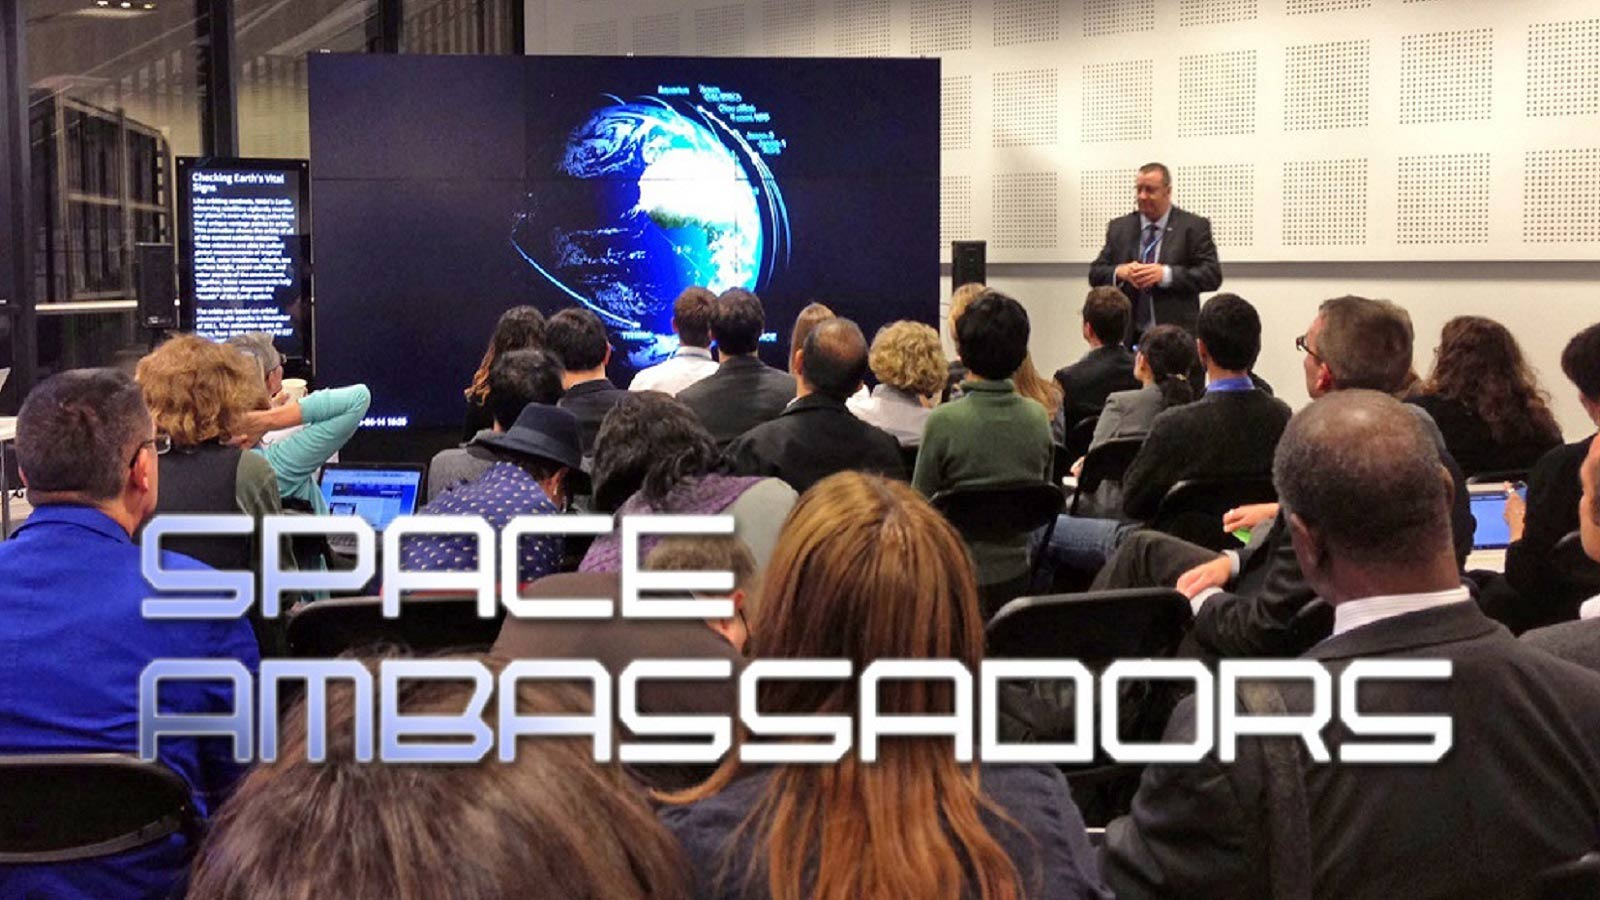 A public presentation by a NSS Space Ambassador